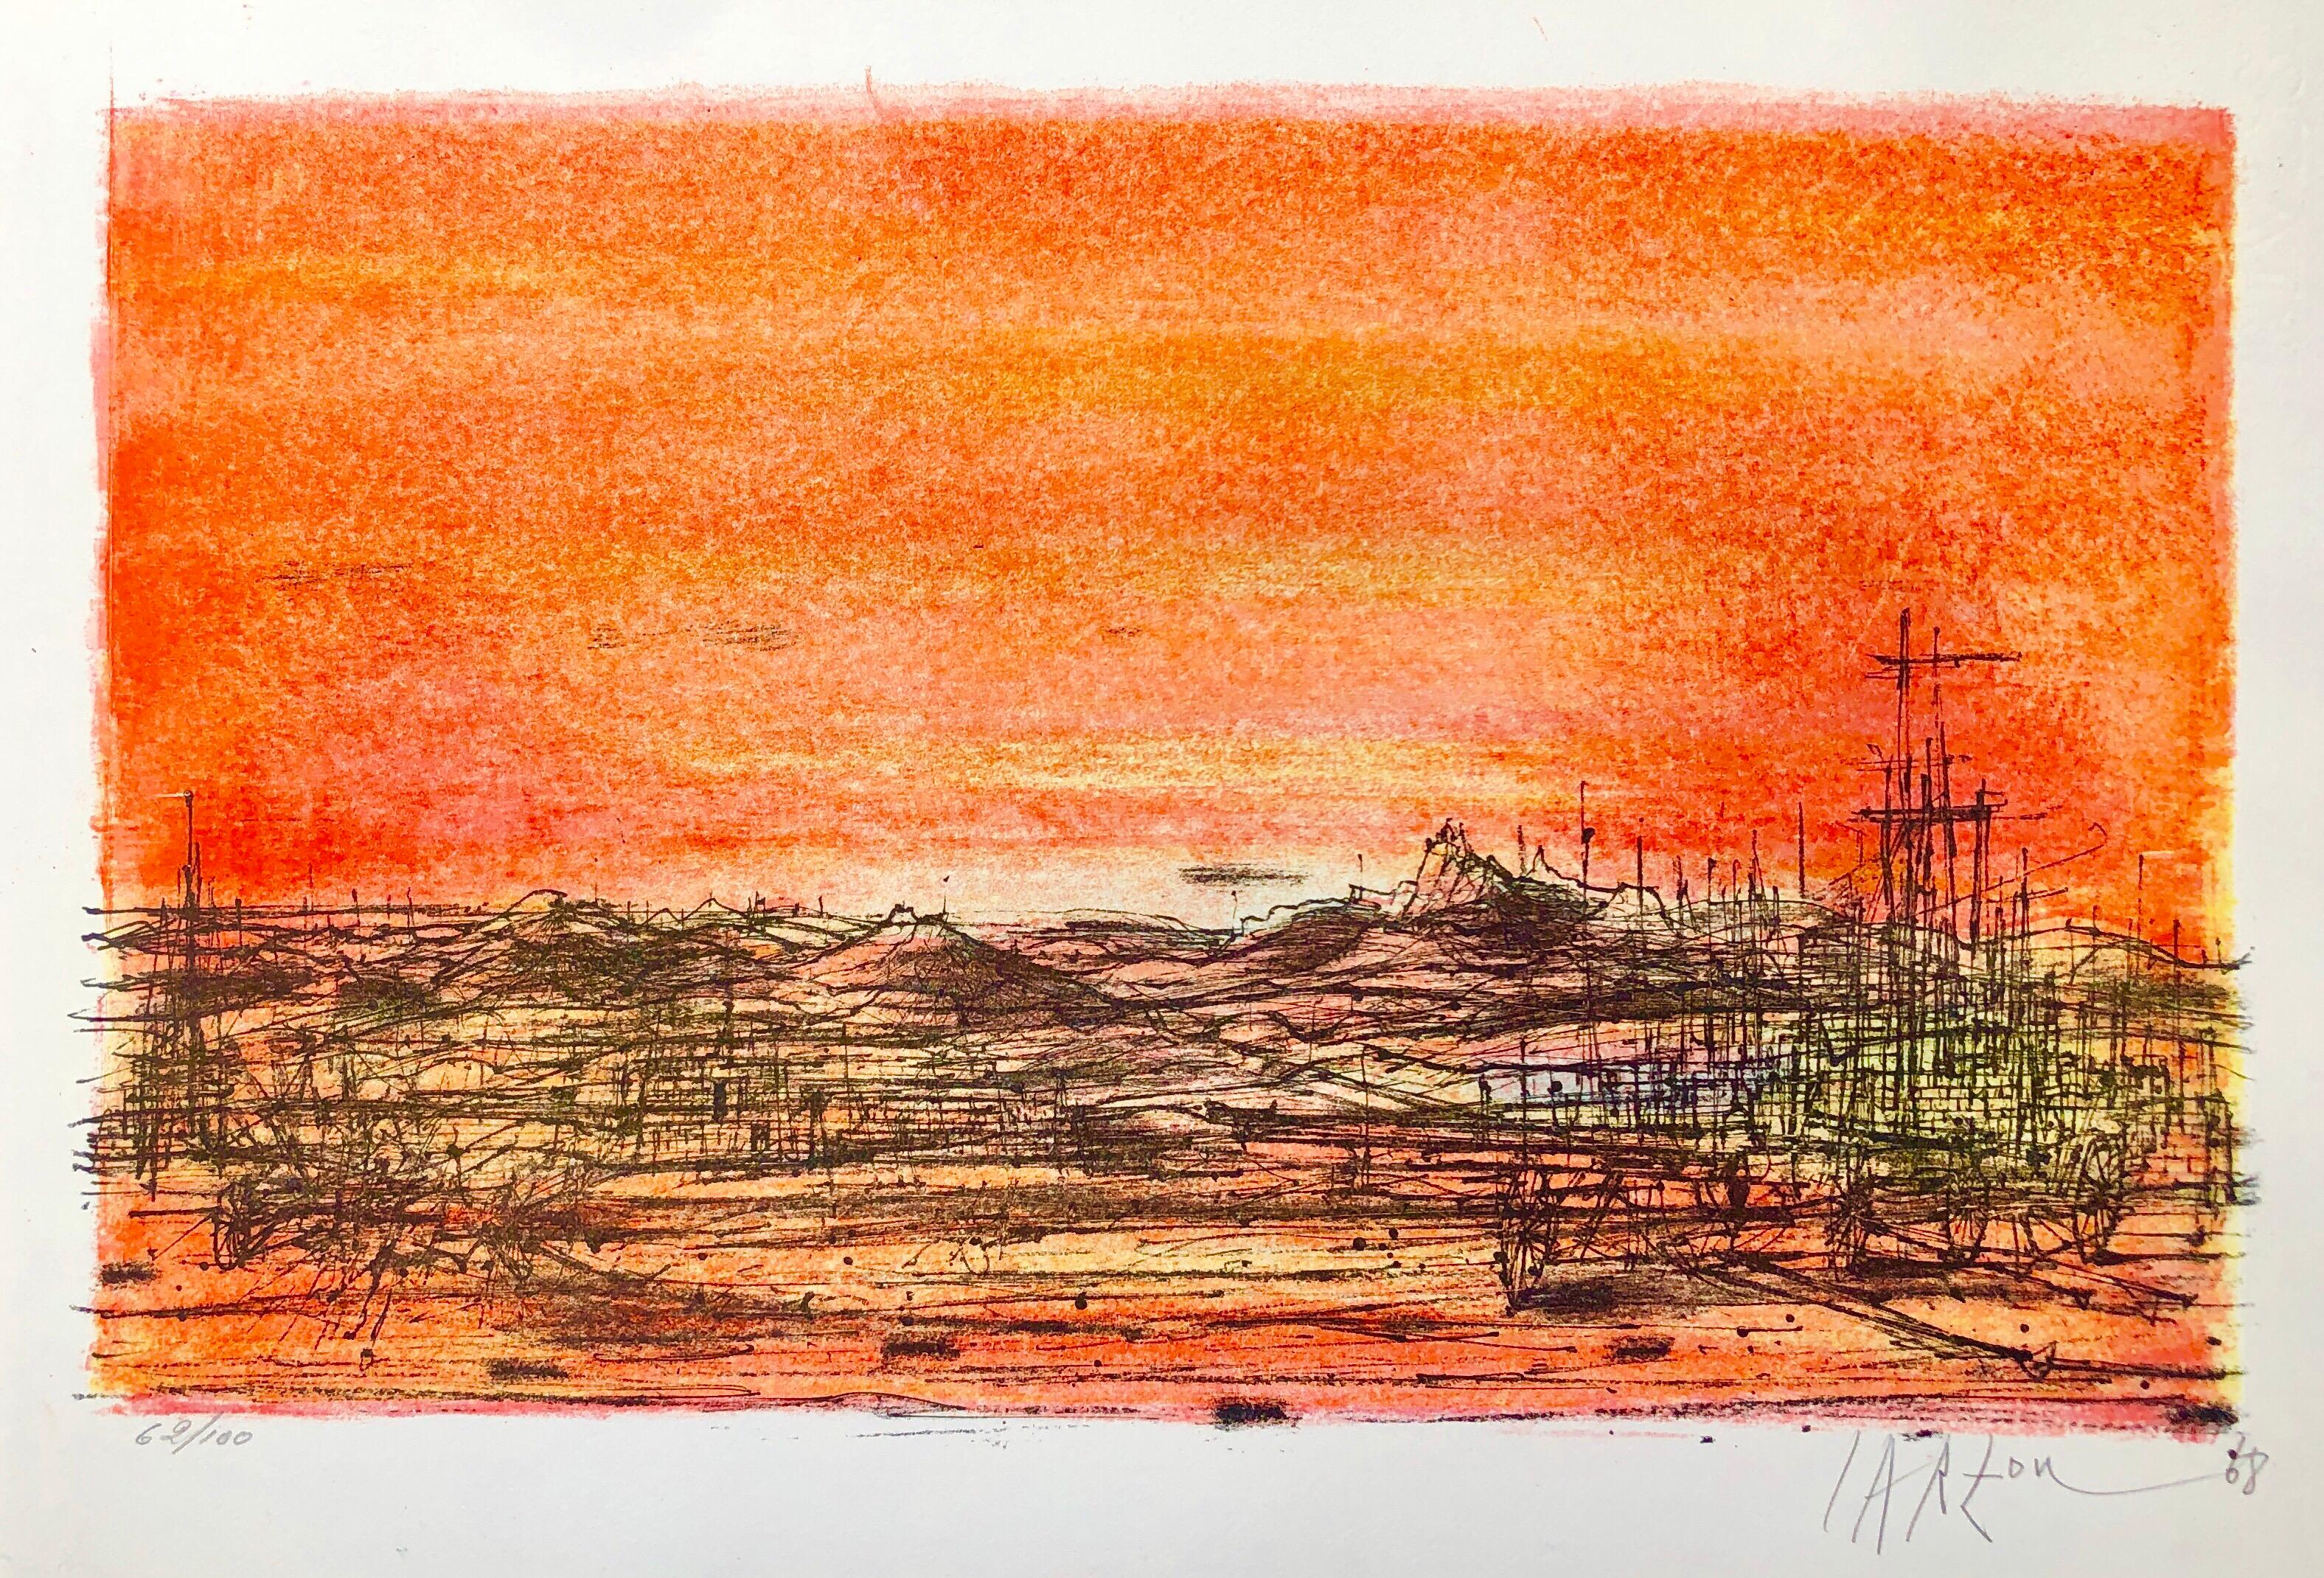 1968 Carzou French Modernist Color Lithograph Volcano Flaming Orange Color